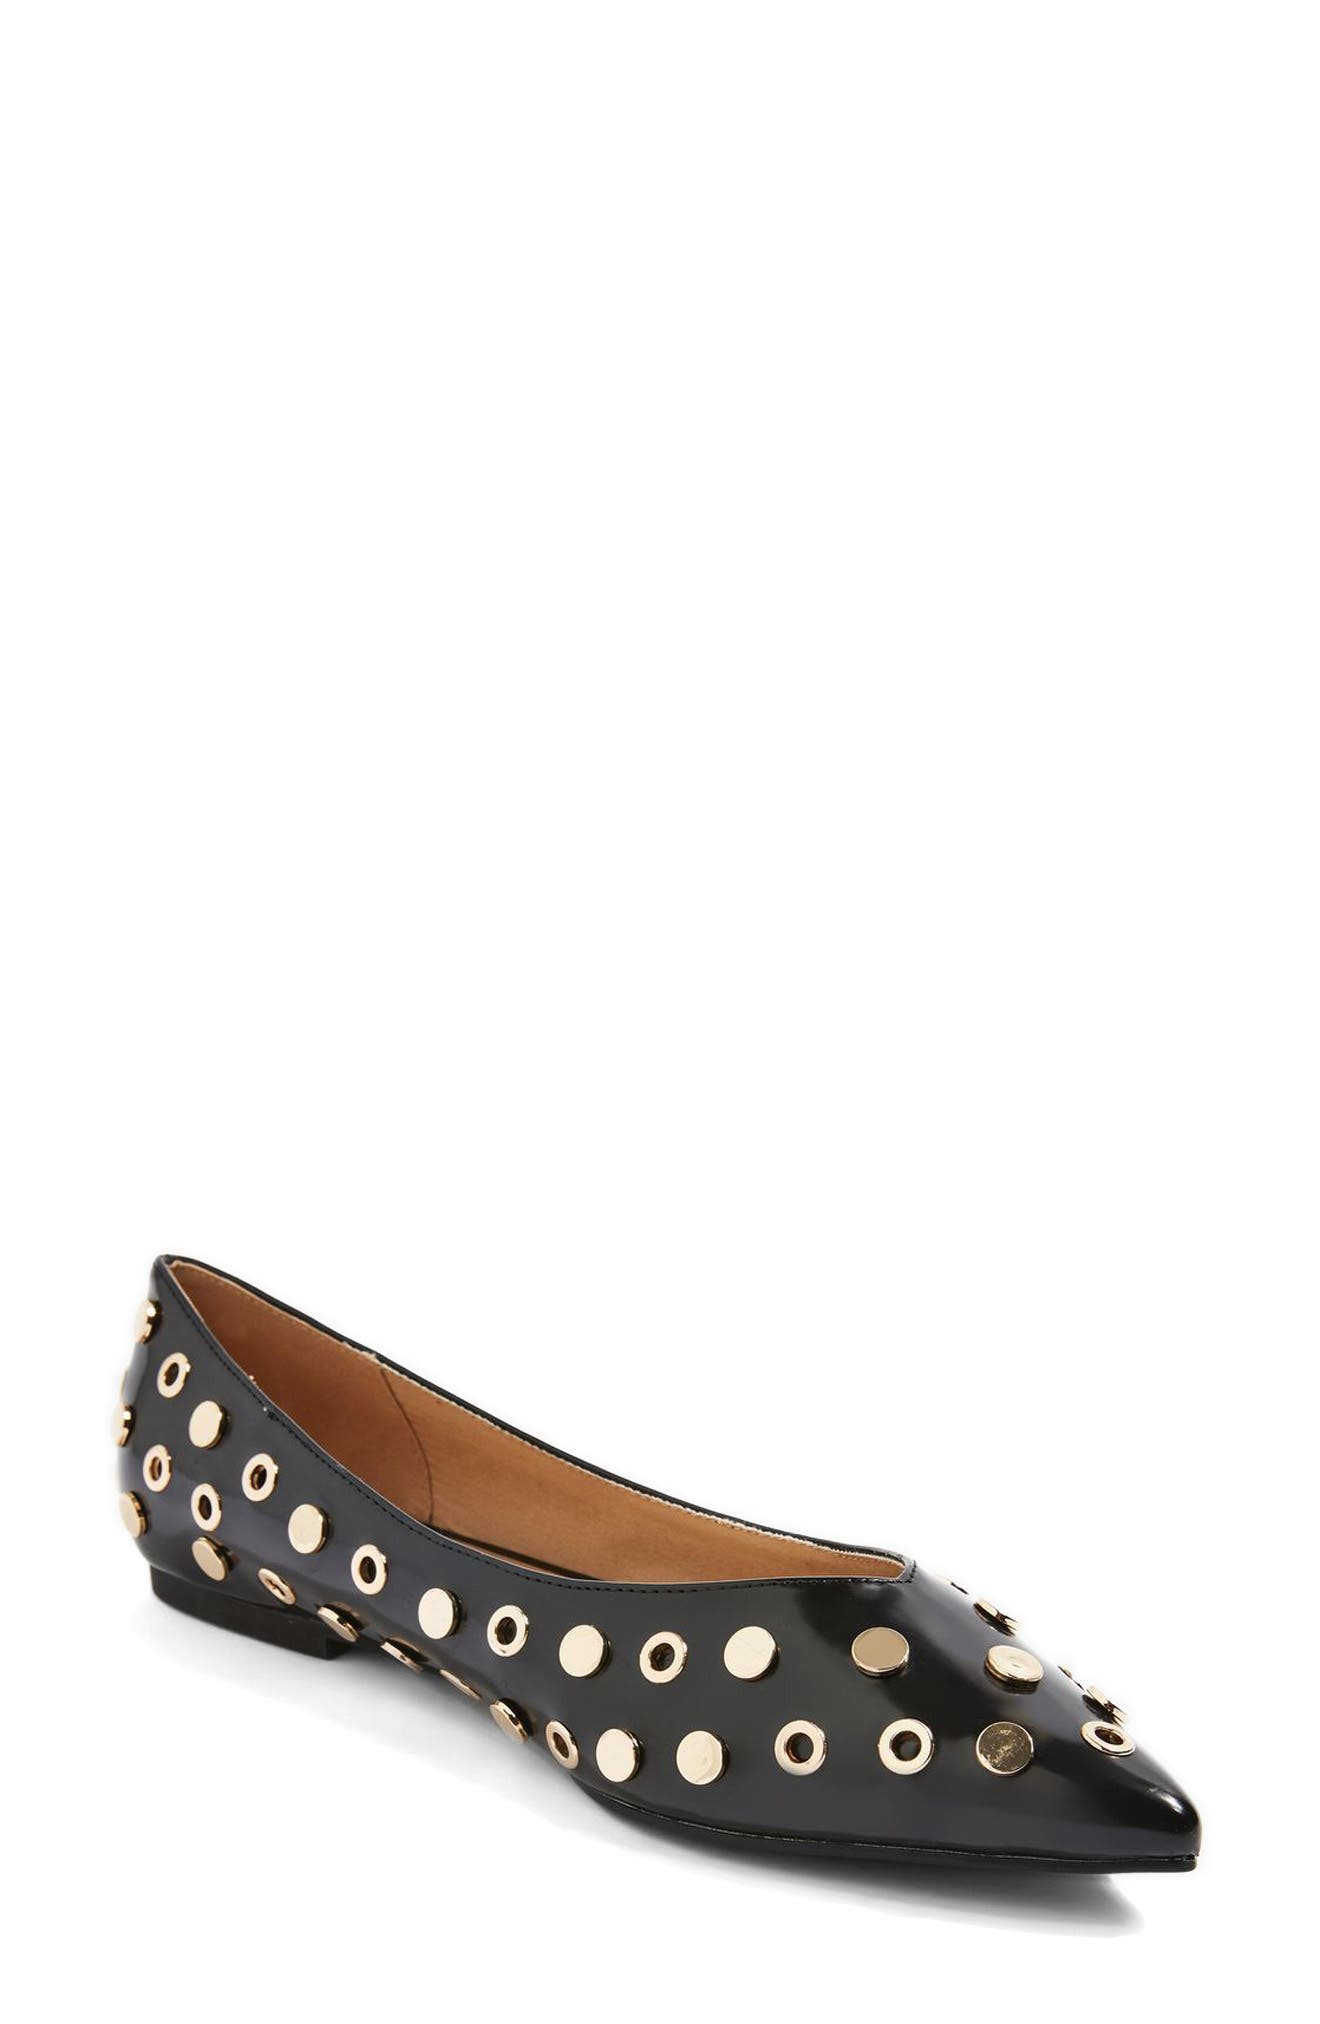 Alibi Multi Studded Flat,                             Main thumbnail 1, color,                             001